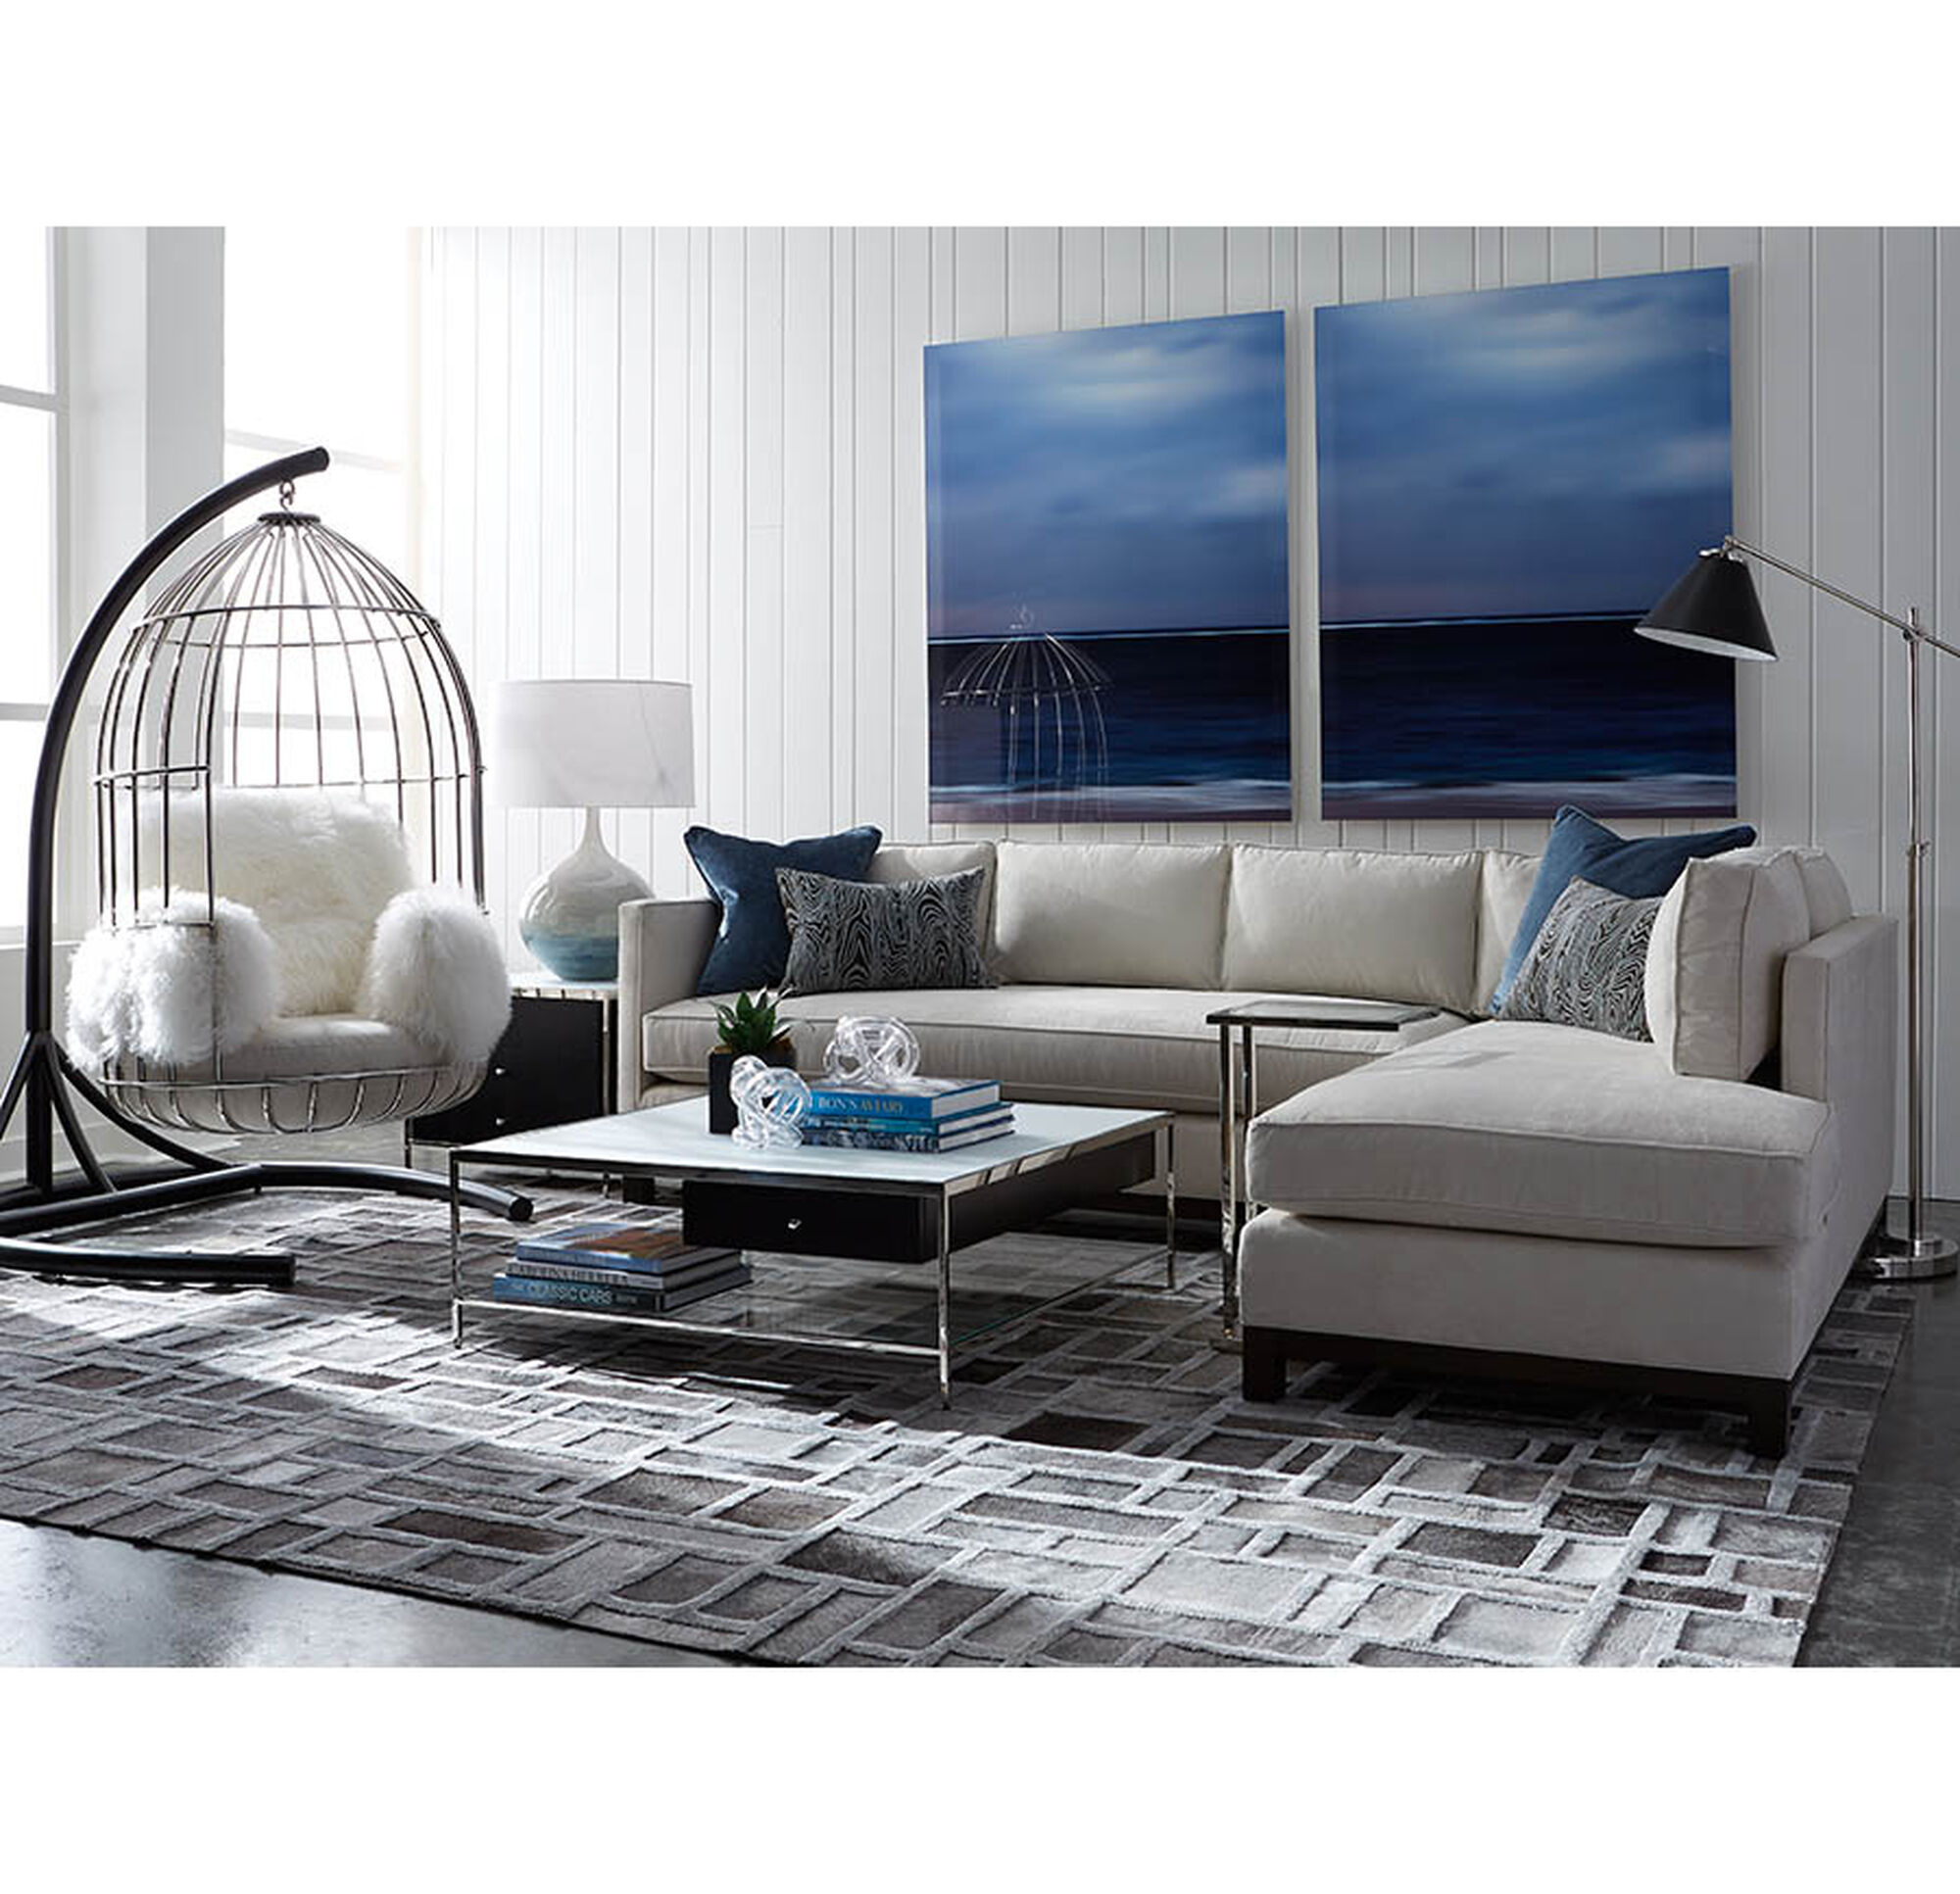 room with big allen of home ideas hardwood large floors depot size collection area and lots on rug for living me full stores abstract surprising rugs guys roth decorating modern costco walmart cool near